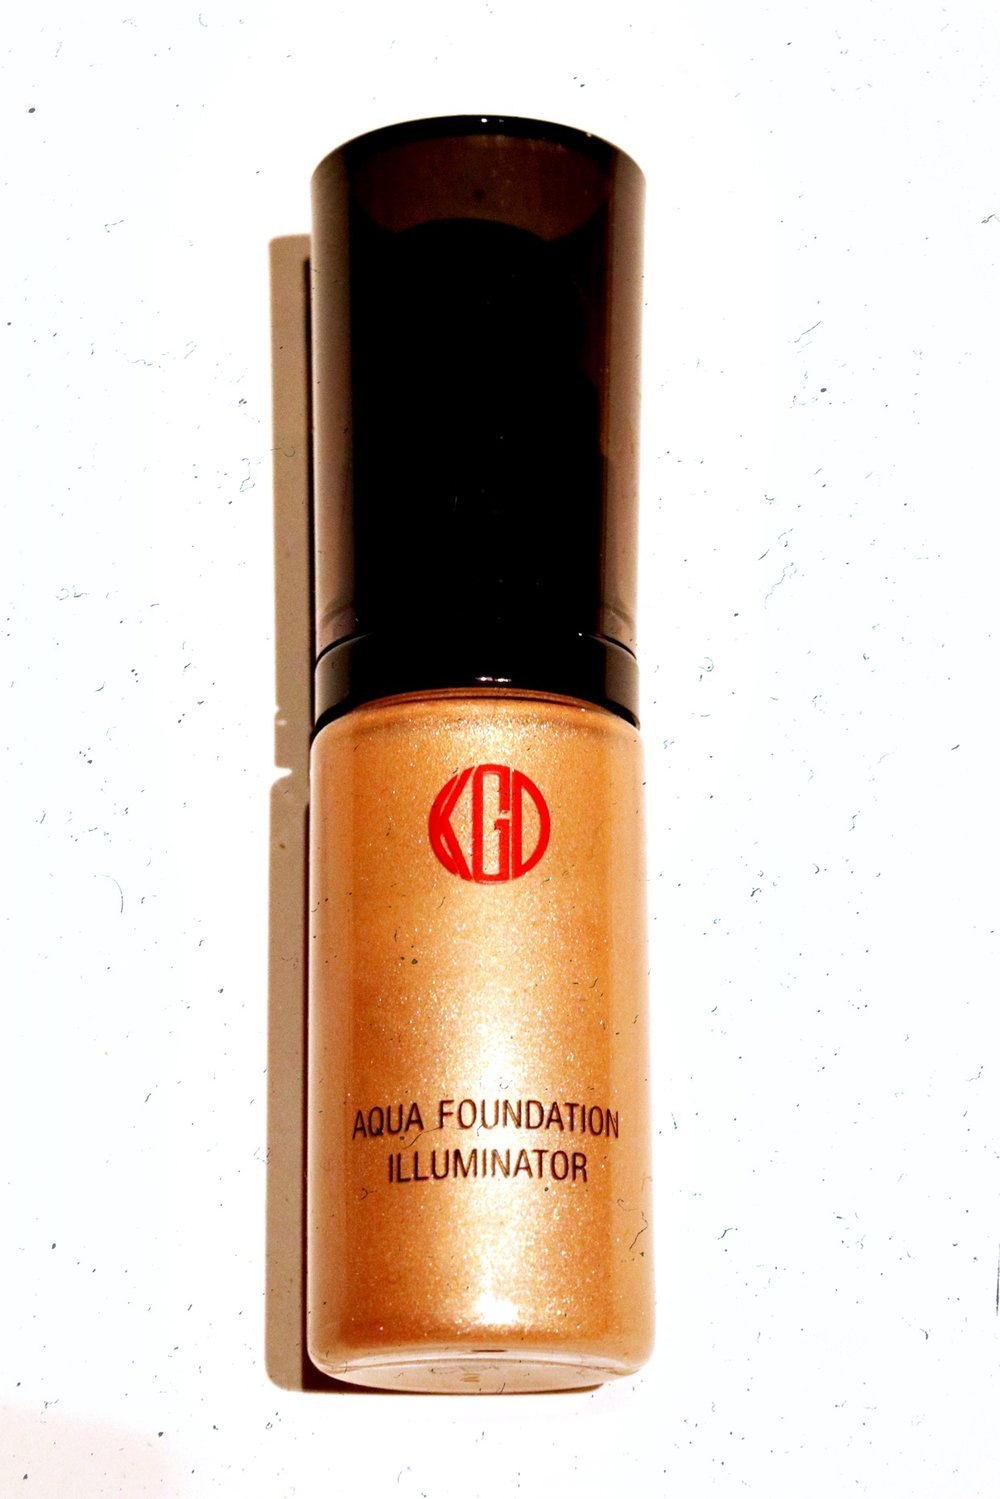 Koh Gen Do Aqua Foundation Illuminator - TEXTURE: SHEER LIGHT LIQUIDPIGMENTATION: 10BLENDABILITY: 10HONORABLE: CRUELTY FREE